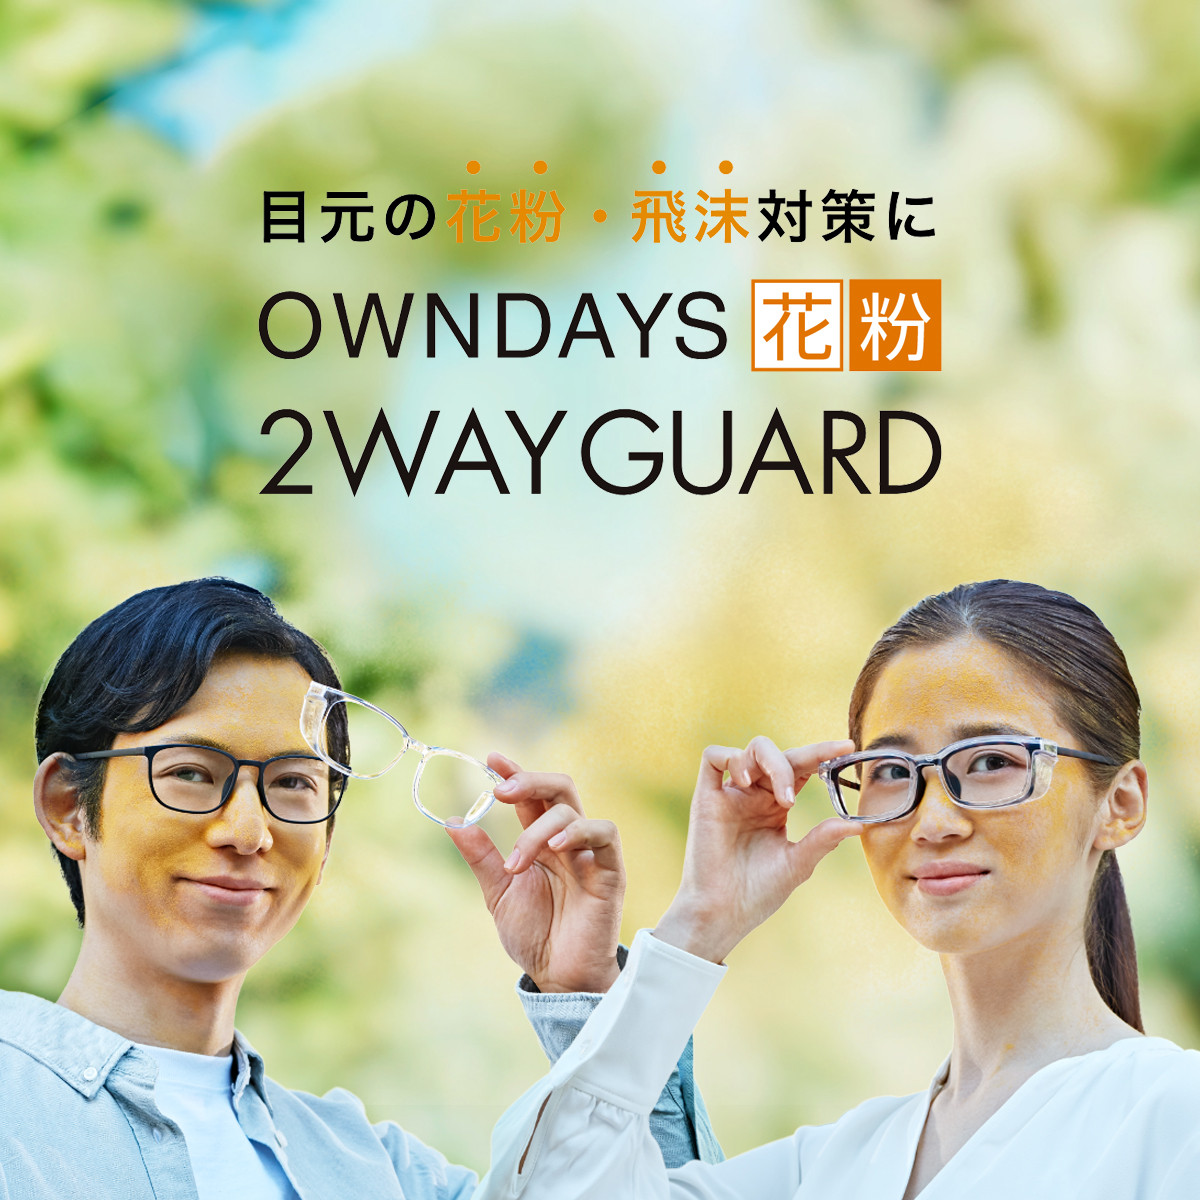 OWNDAYS 花粉 2WAY GUARD